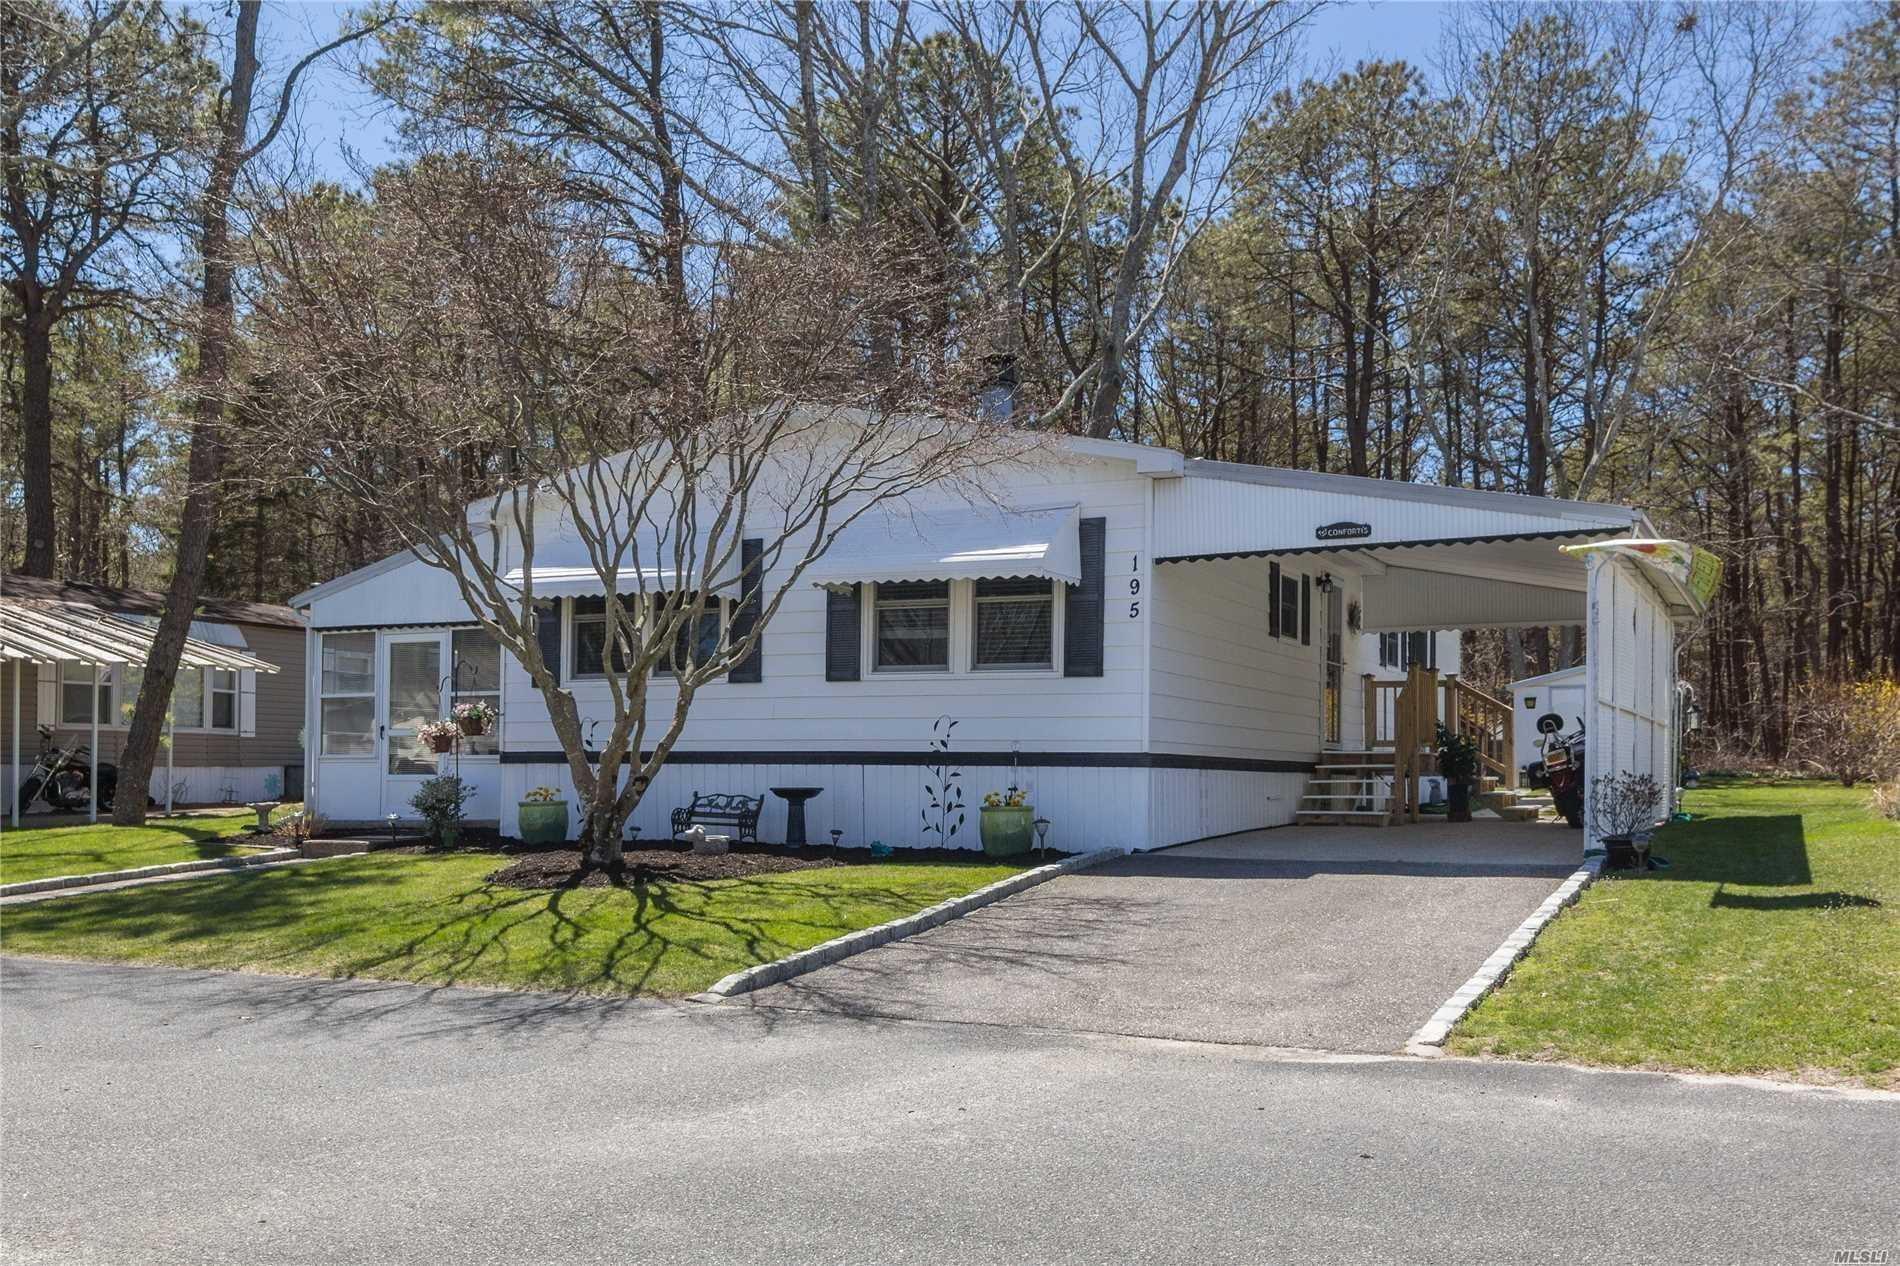 55 And Older Community., Cash Only. Doublewide On Preserve. Kitchen And Bathroom Have Been Updated. Newer Wooden Flooring. New Appliances. Belgian Block Driveway. 2 Bedrooms Both With Walk In Closets. 2 Full Baths One With Tub. Sunroom. Deck Overlooking The Preserve. Rare Find! Unit Has Wood Burning Fireplace. Land Rent Is $919.68 Per Month. Includes Trash And Snow Removal. Water, Cesspool Maintenance. Use Of Clubhouse With Gym. Southampton Tax And Beach Rights. New Roof! 2 Sheds!